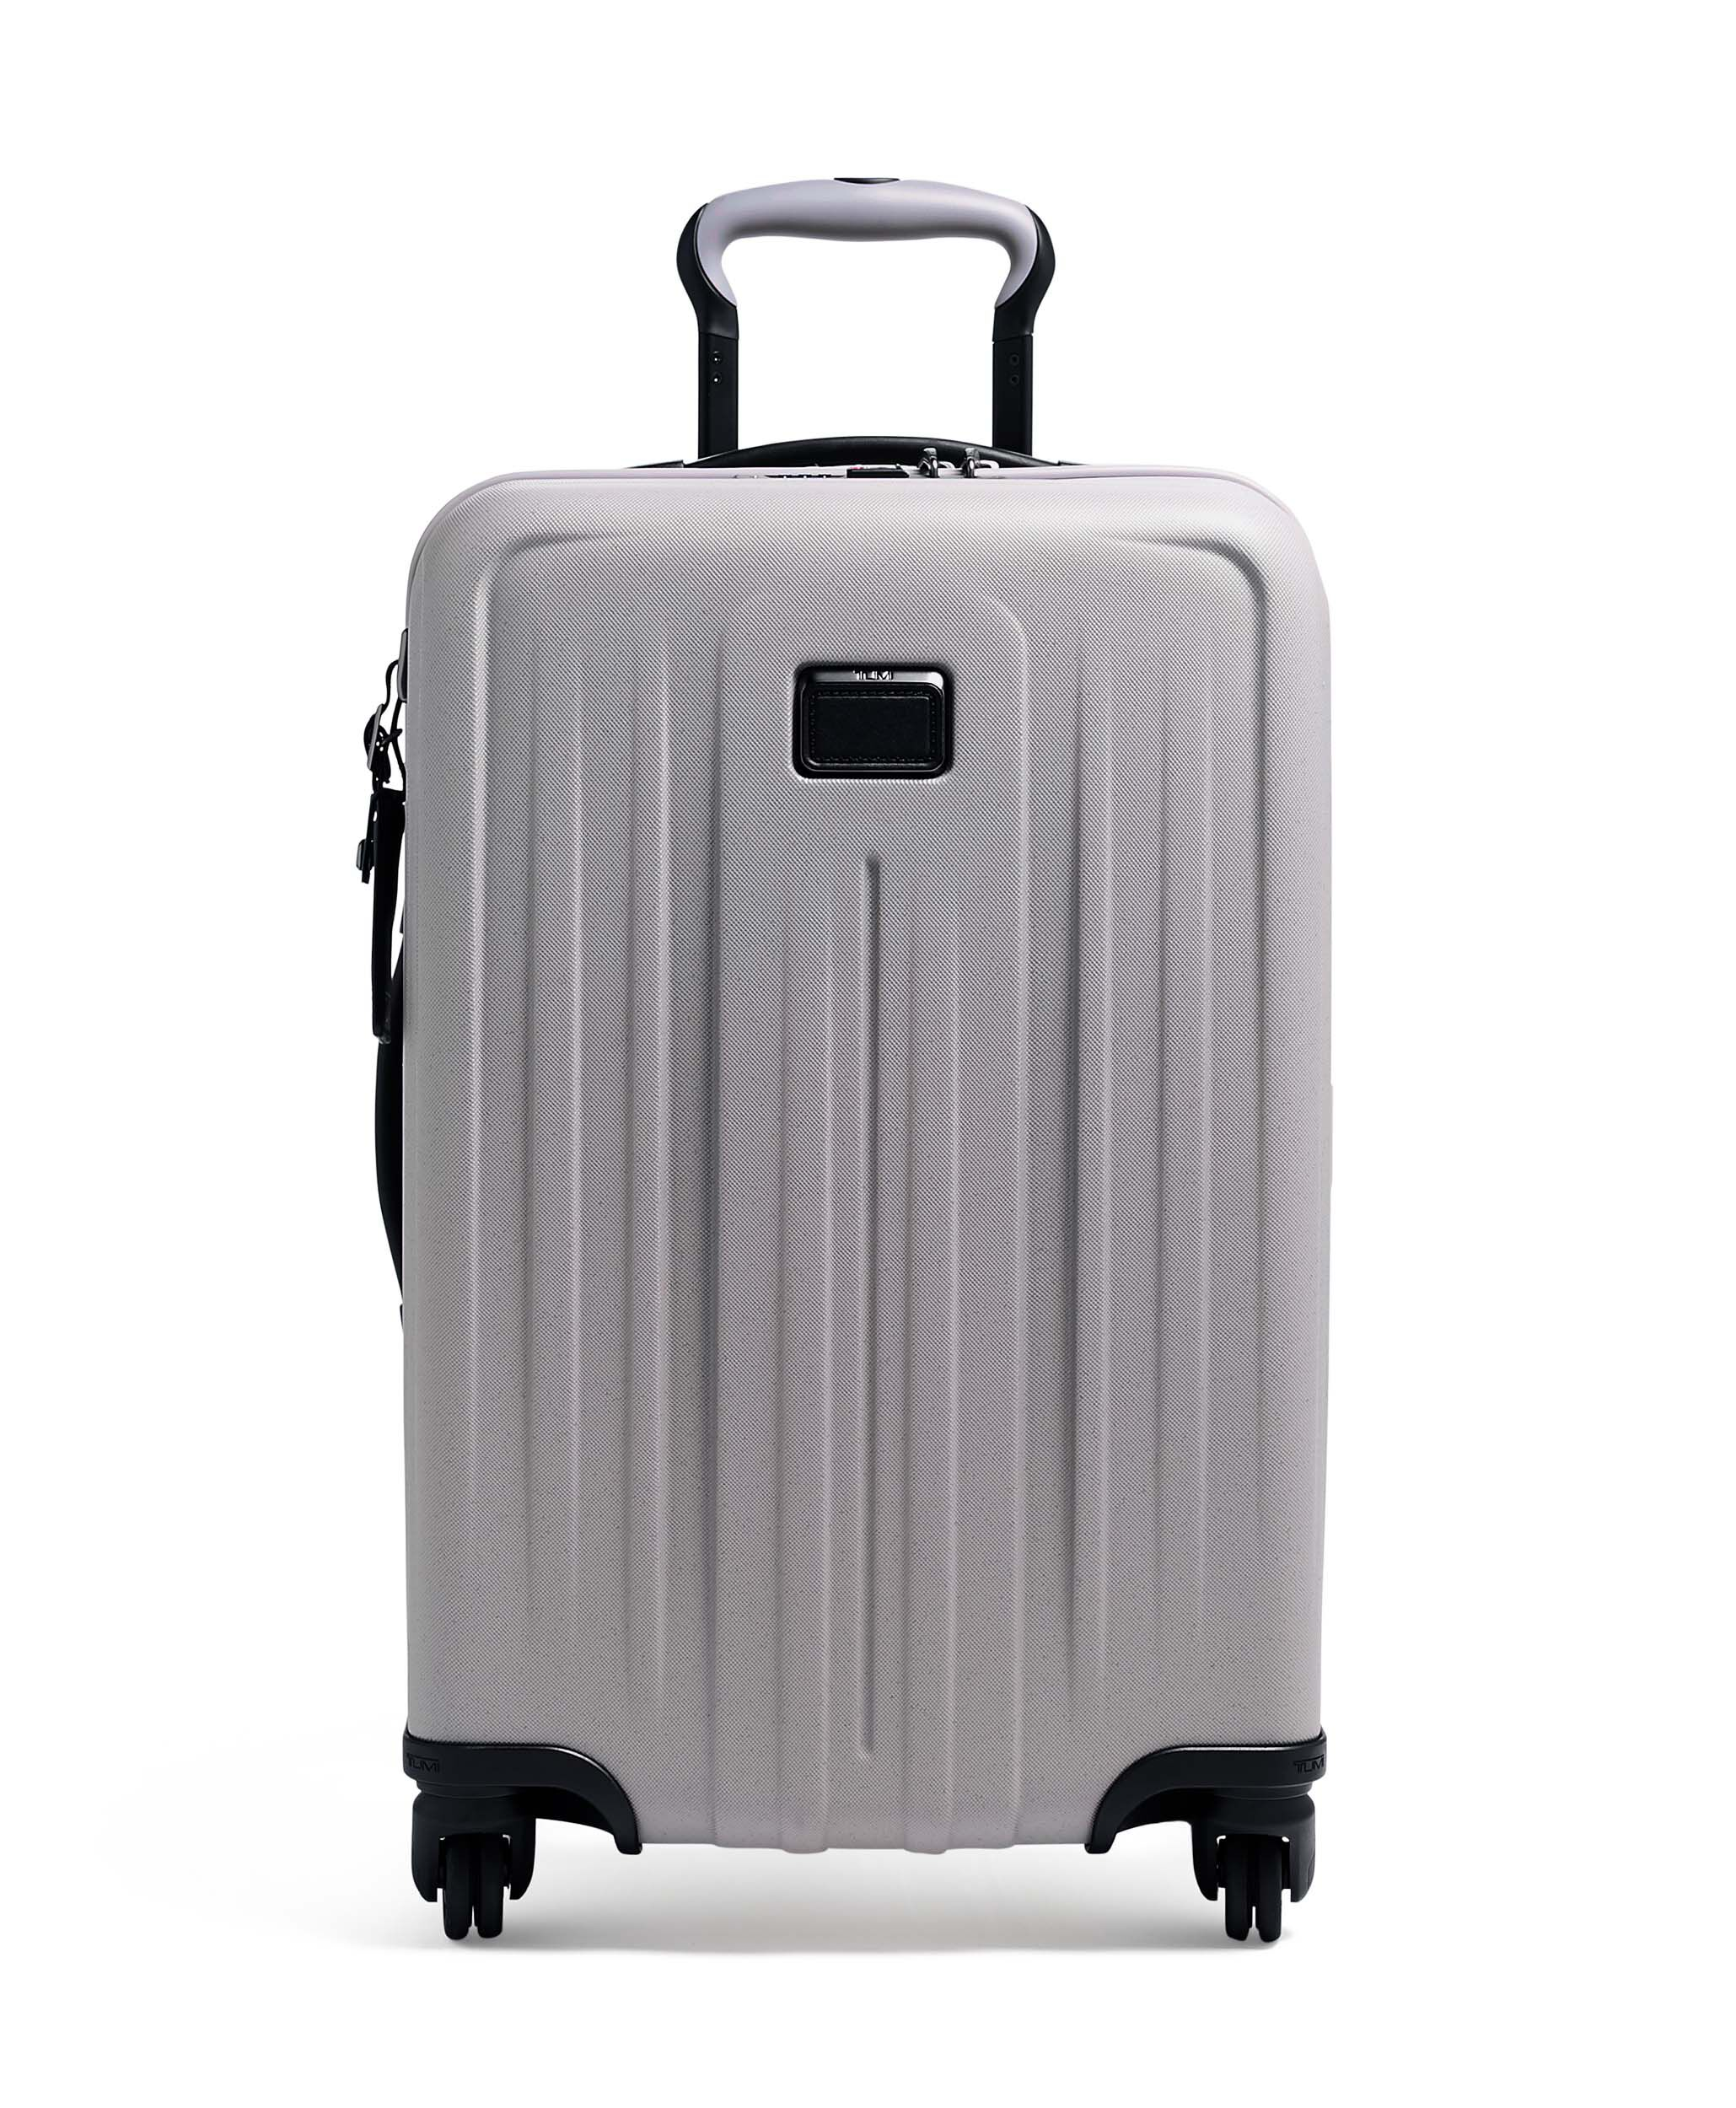 Carry On Luggage Travel Rolling Luggage